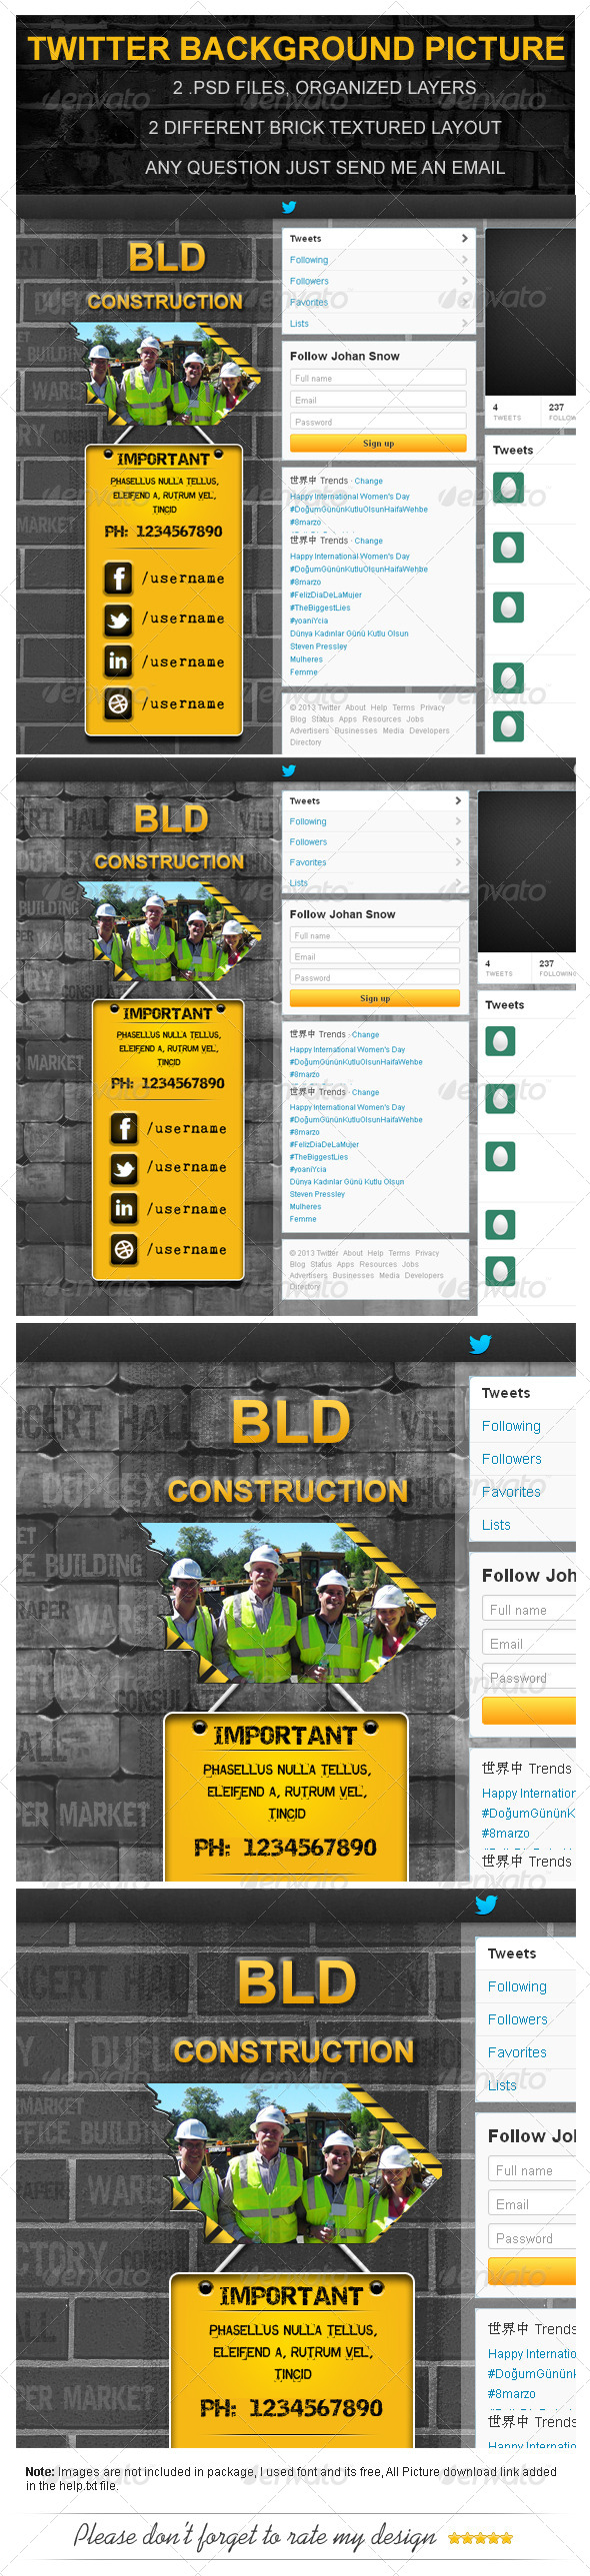 GraphicRiver Building Construction Twitter Background Picture 4395731